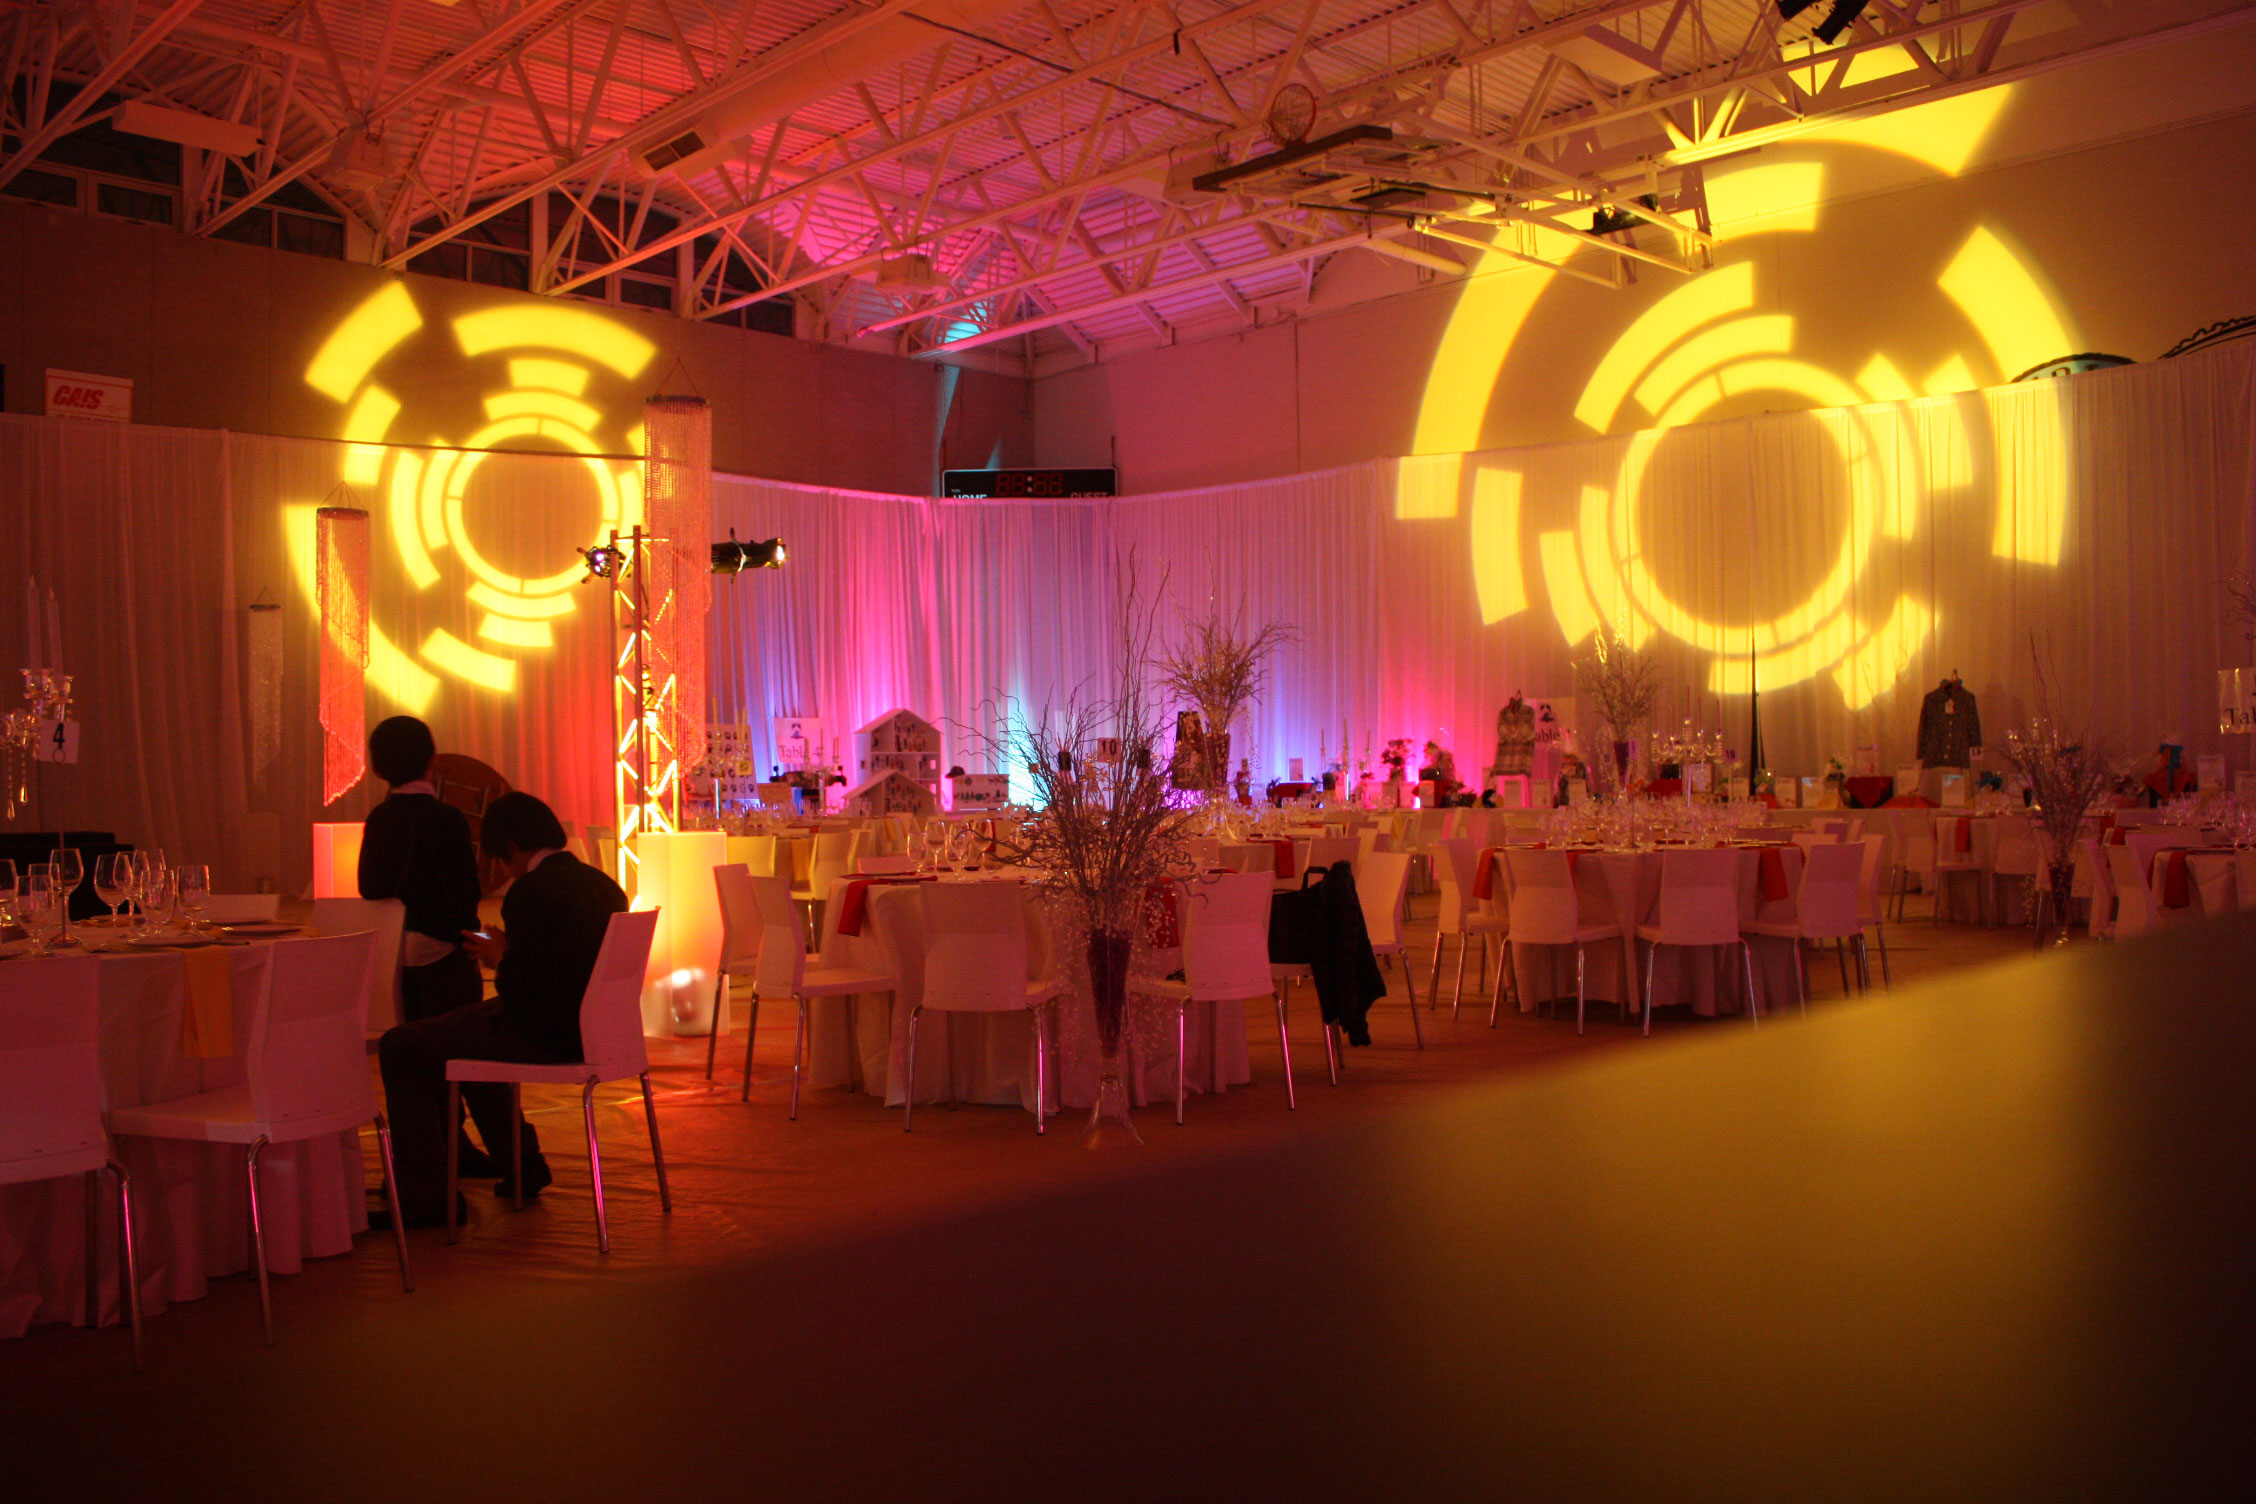 Southridge Gala - corporate party decor - draping - venue draping - perimiter draping - lighting - custom gobo lighting - centerpiece - decoration